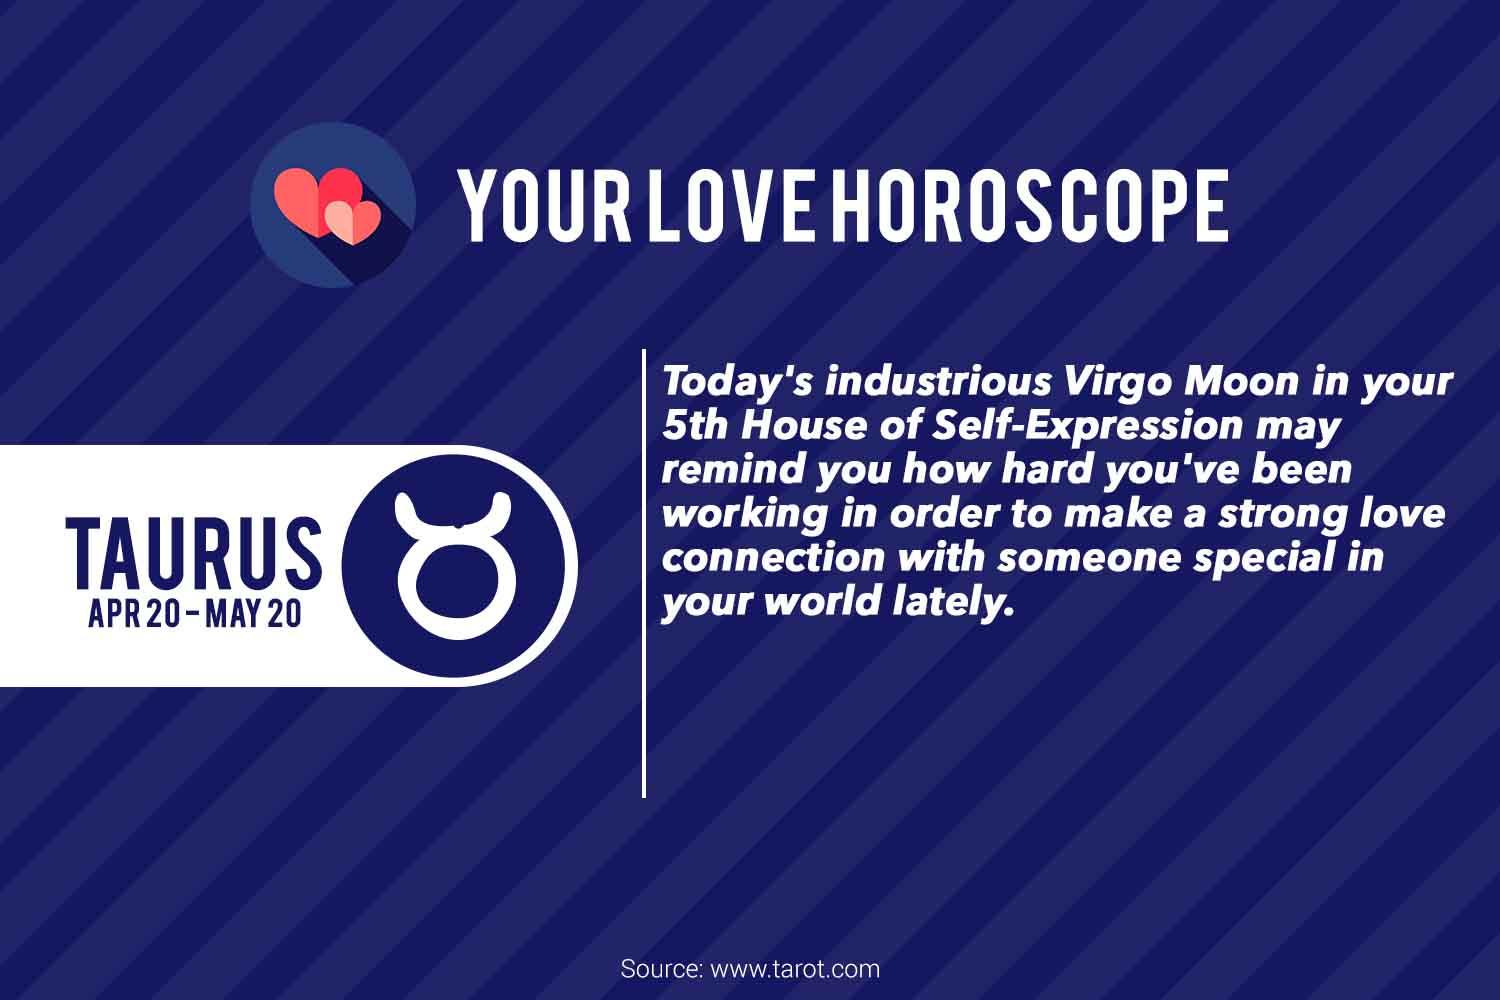 taurus-love-horoscope-image-for-inuth